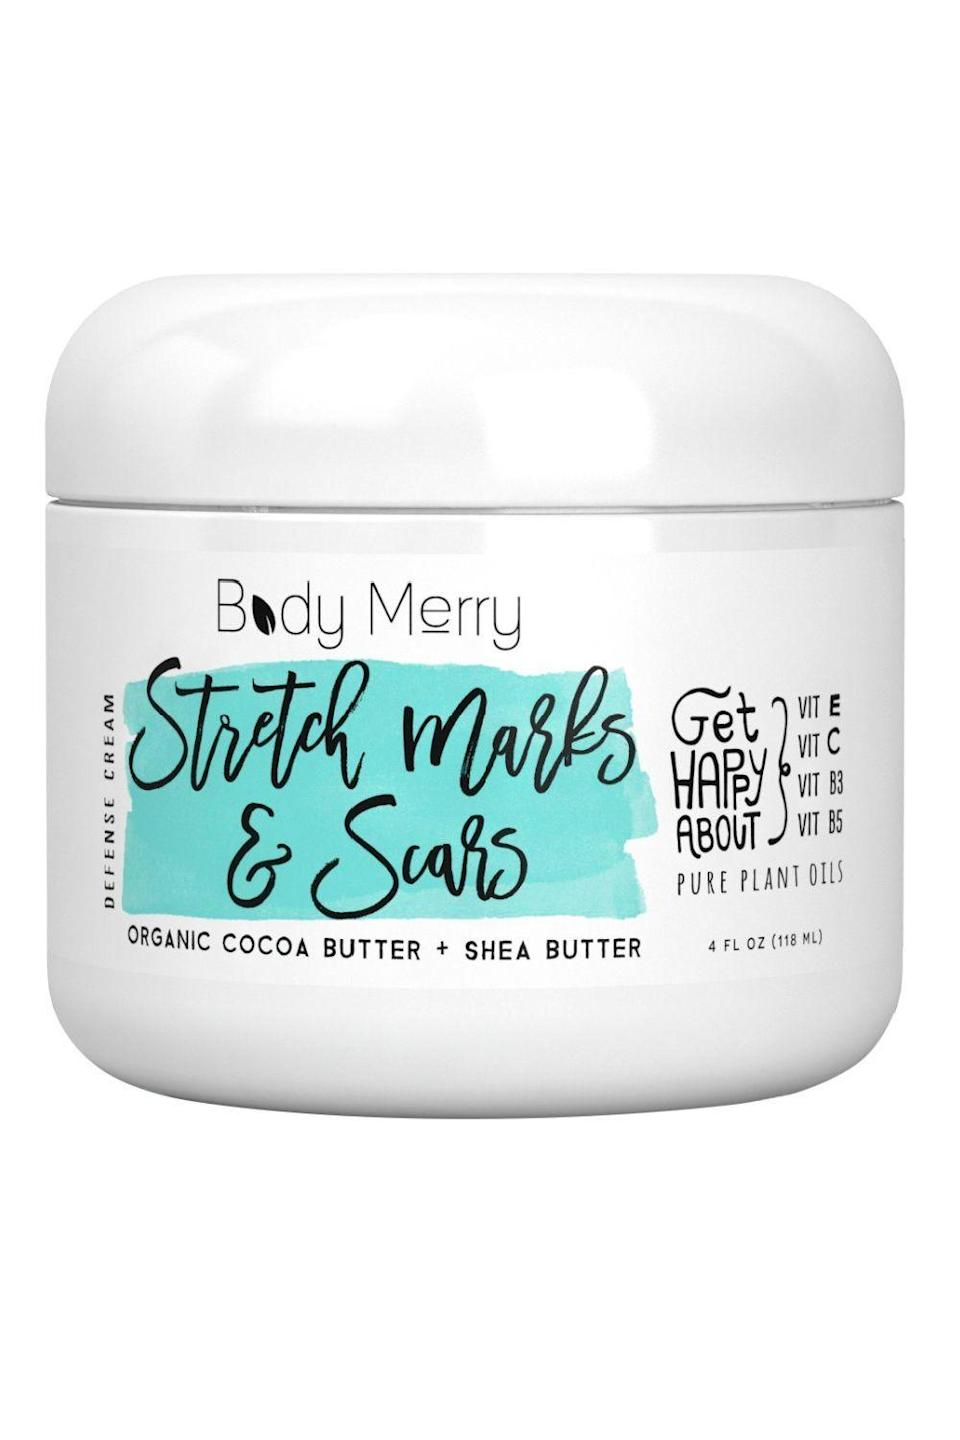 """<p><strong>Body Merry</strong></p><p>amazon.com</p><p><strong>$19.99</strong></p><p><a href=""""https://www.amazon.com/dp/B00OTZ28DE?tag=syn-yahoo-20&ascsubtag=%5Bartid%7C10049.g.23323942%5Bsrc%7Cyahoo-us"""" rel=""""nofollow noopener"""" target=""""_blank"""" data-ylk=""""slk:Shop Now"""" class=""""link rapid-noclick-resp"""">Shop Now</a></p><p>As one of the more affordable options on this list, you'll be happy to know this cream for <a href=""""https://www.cosmopolitan.com/style-beauty/beauty/advice/g3017/how-to-get-rid-of-acne-scars/"""" rel=""""nofollow noopener"""" target=""""_blank"""" data-ylk=""""slk:getting rid of scars"""" class=""""link rapid-noclick-resp"""">getting rid of scars</a> and stretch marks <strong>has more than 4,000 positive Amazon reviews</strong>. Although it might be impossible to remove or prevent stretch marks completely, this blend of cocoa butter, shea butter, vitamin E, <a href=""""https://www.cosmopolitan.com/style-beauty/beauty/g12091058/best-vitamin-c-serum-face-skin/"""" rel=""""nofollow noopener"""" target=""""_blank"""" data-ylk=""""slk:vitamin C"""" class=""""link rapid-noclick-resp"""">vitamin C</a>, vitamin B3 (<a href=""""https://www.cosmopolitan.com/style-beauty/beauty/g28844492/best-niacinamide-serums/"""" rel=""""nofollow noopener"""" target=""""_blank"""" data-ylk=""""slk:niacinamide"""" class=""""link rapid-noclick-resp"""">niacinamide</a>), and vitamin B5 (panthenol) helps to protect and maintain healthy skin.</p>"""